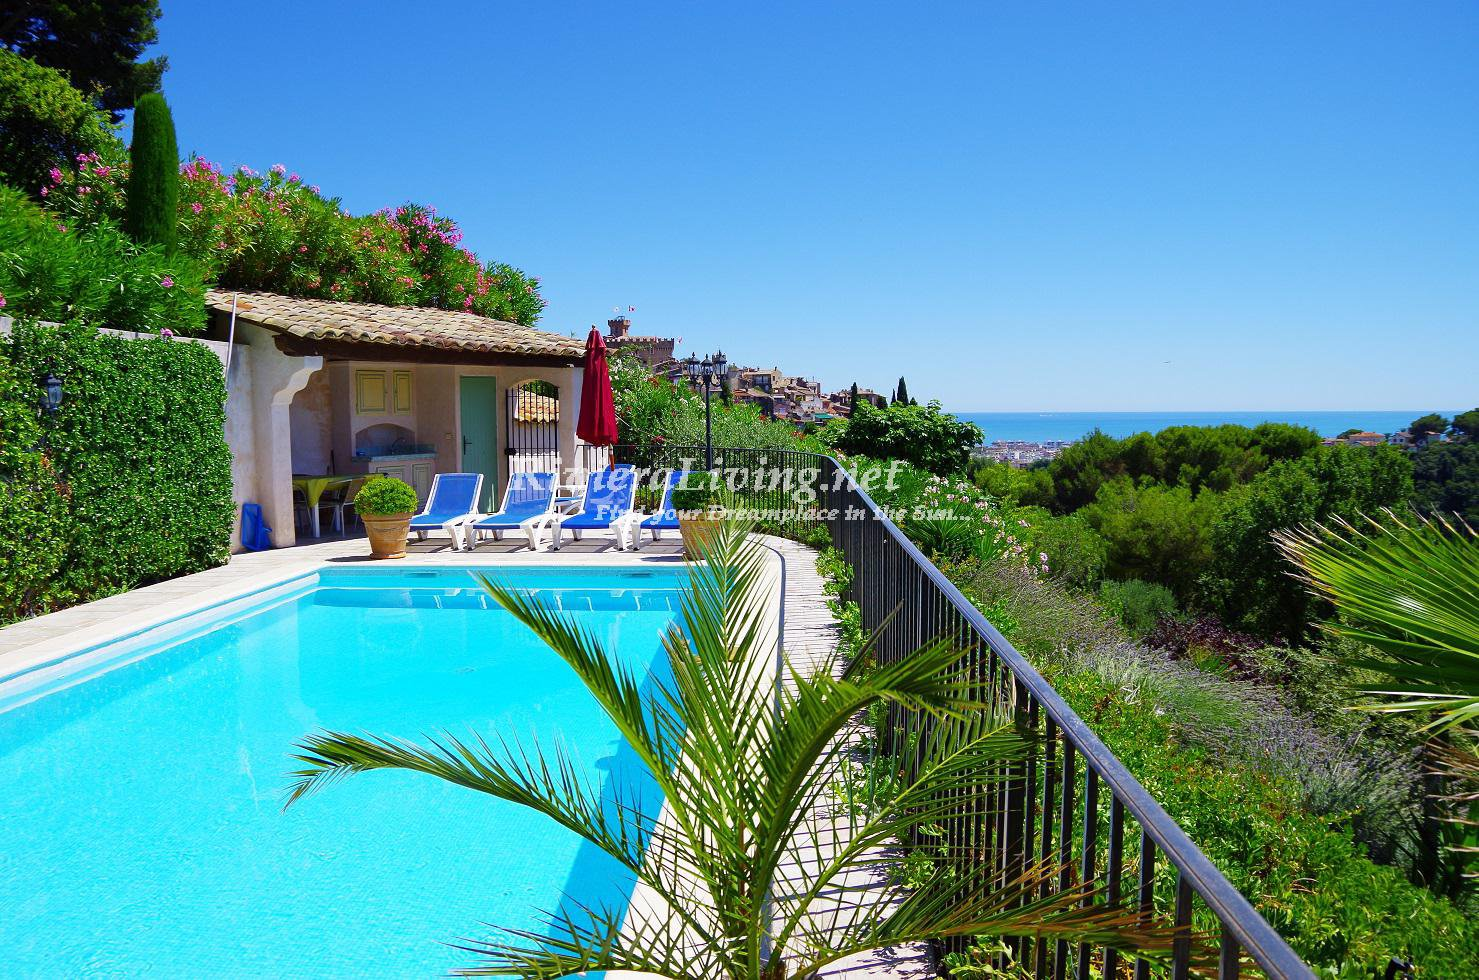 CAGNES SUR MER --- Nice apartment with sea view, access to the pool, near Antibes, Nice and the sea. Suitable for 2 to 4 persons.